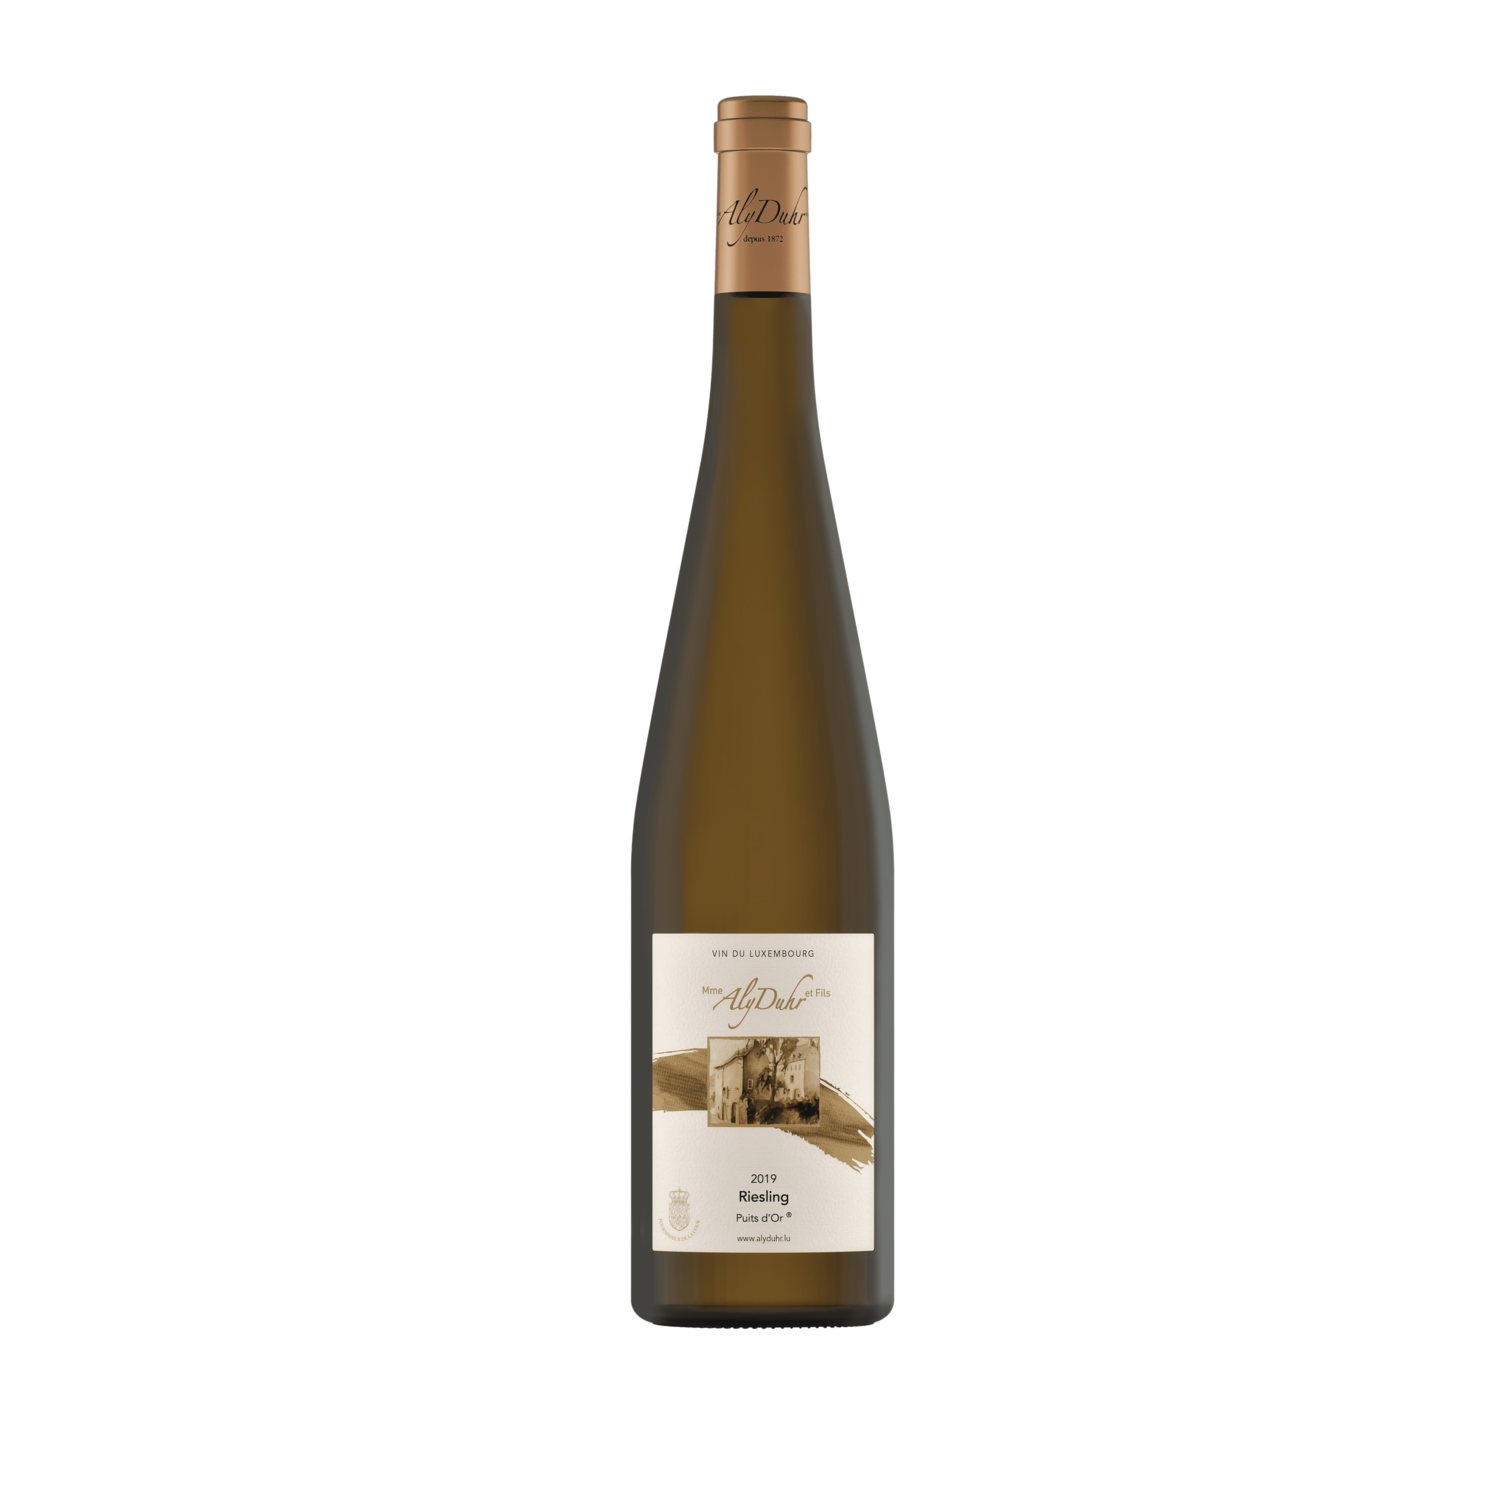 Riesling (Moselle luxembourgeoise)